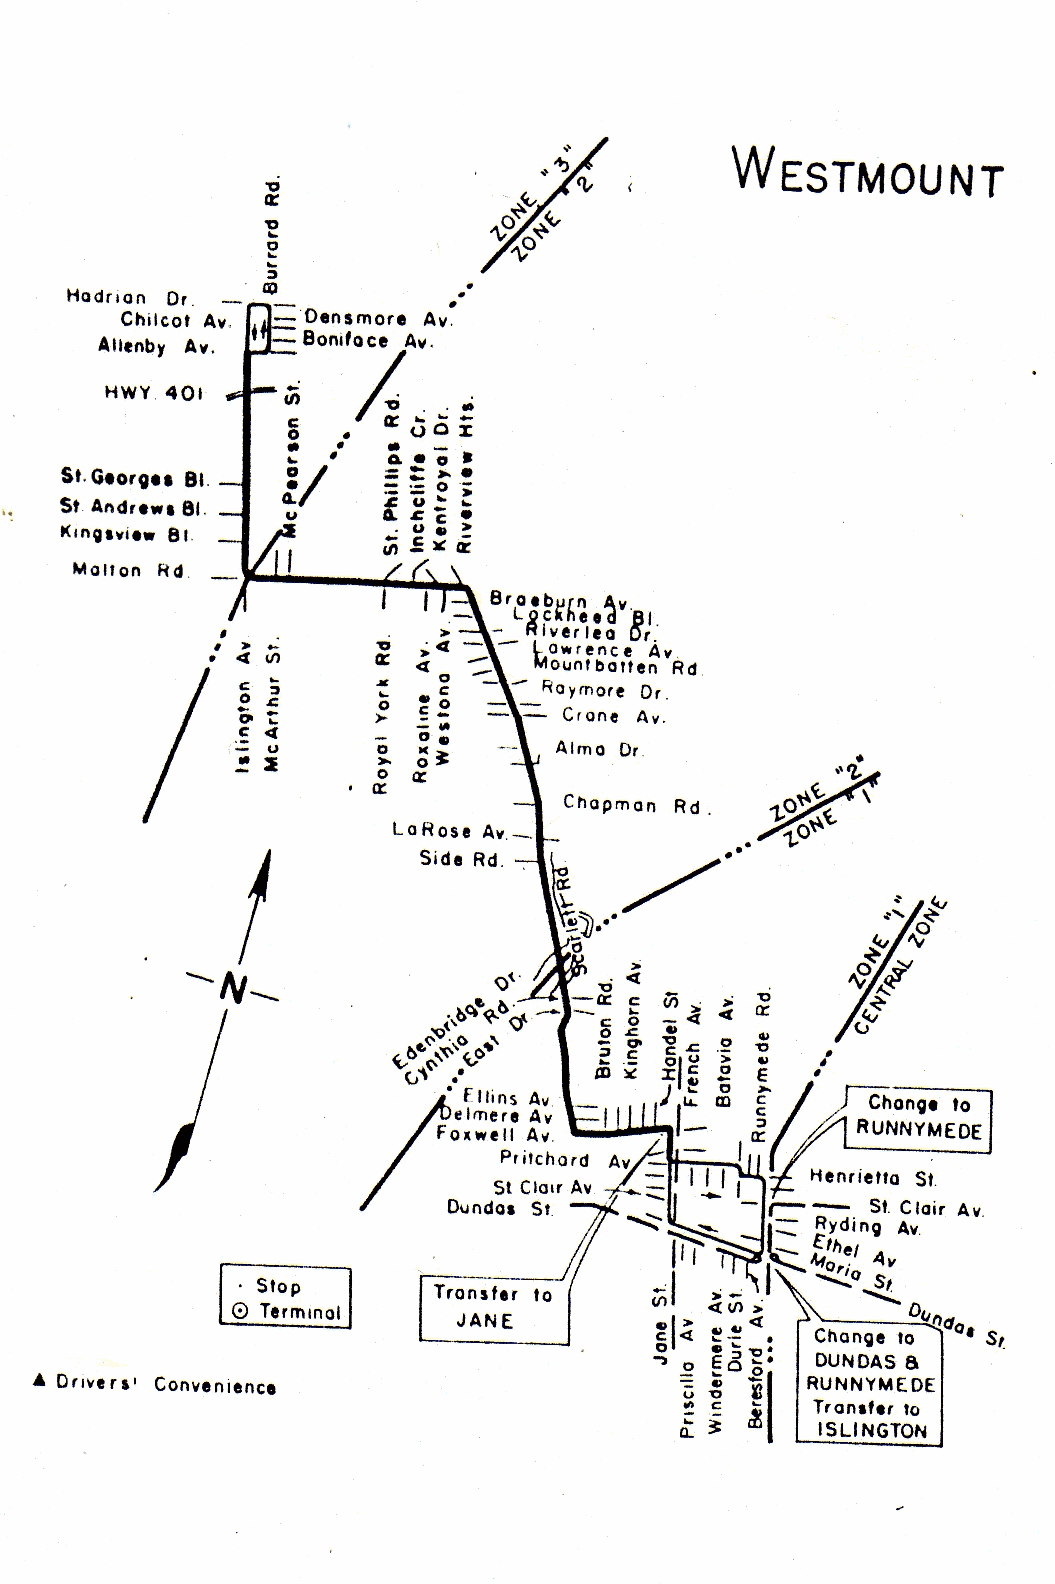 TTC Map Route 87 Westmount 1954